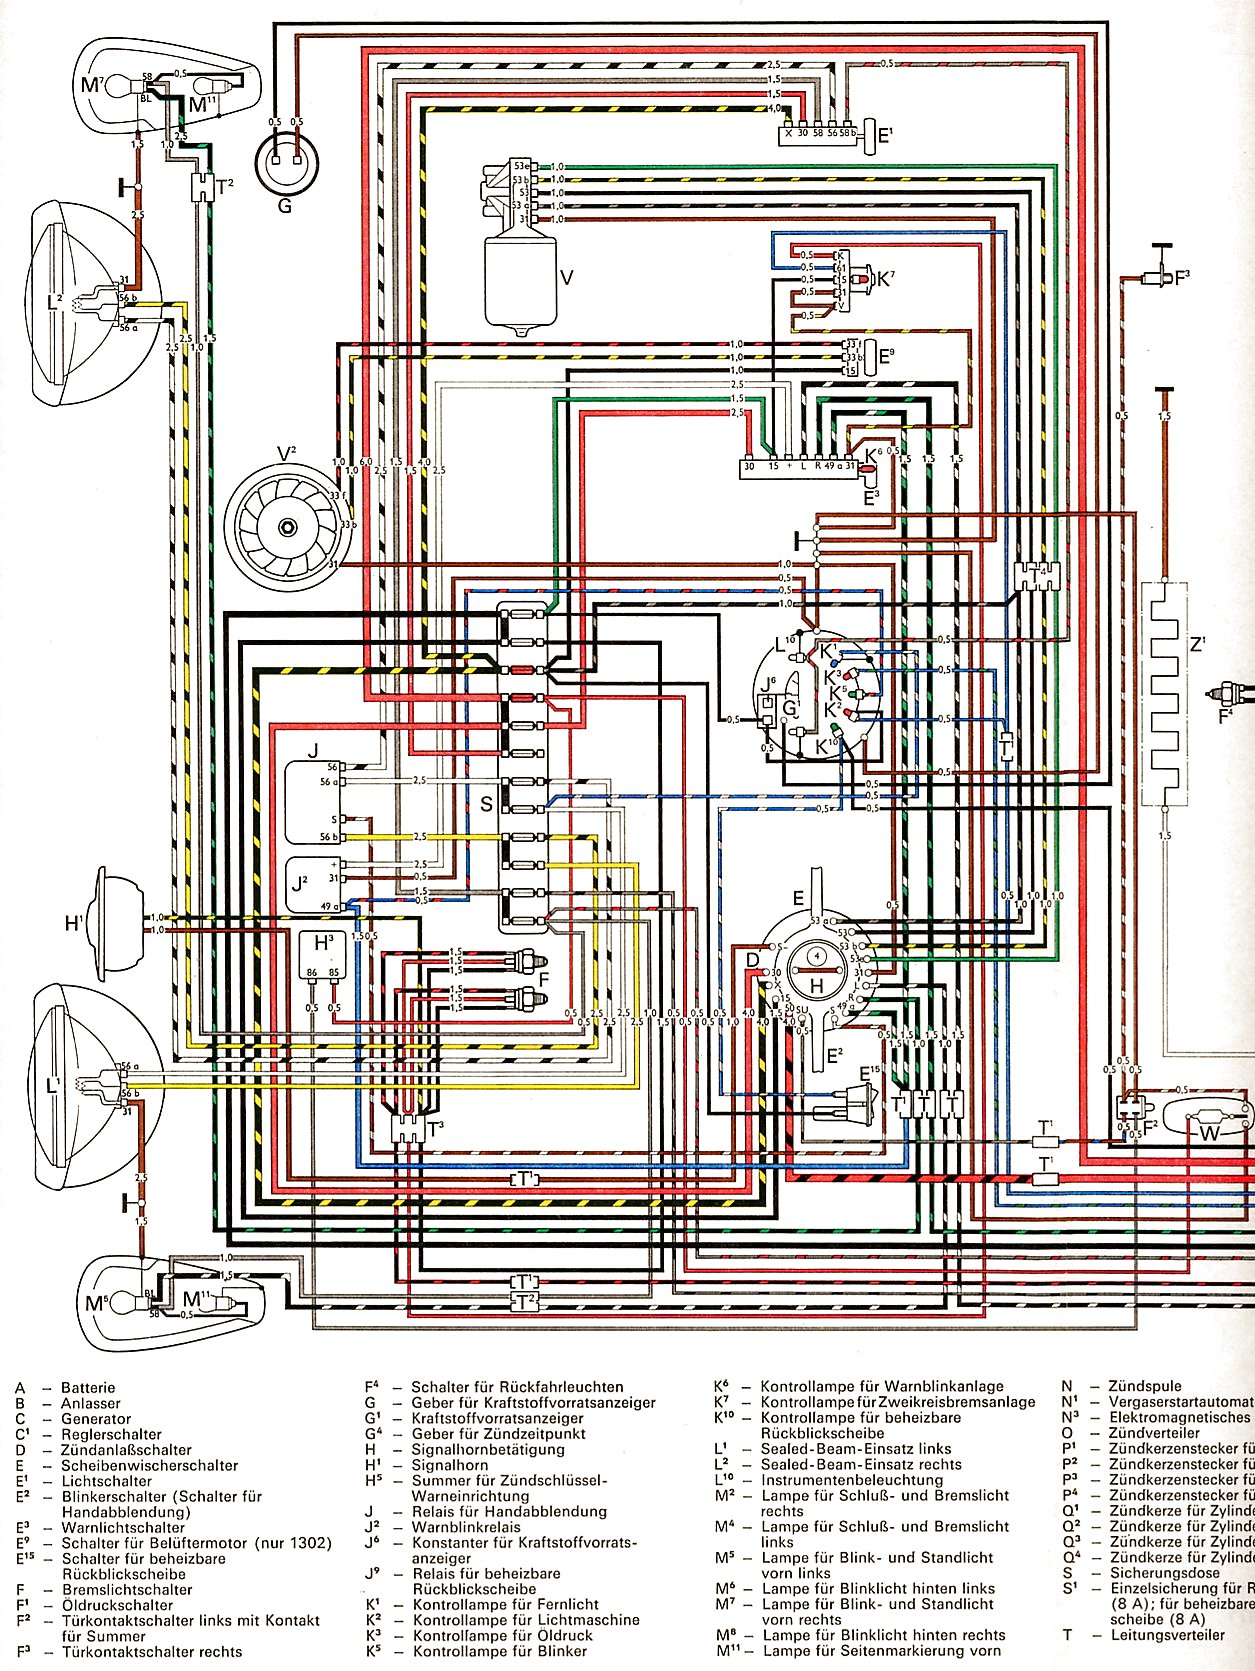 volkswagen wiring diagrams 74 year - fusebox and wiring diagram  series-kneel - series-kneel.paoloemartina.it  paoloemartina.it